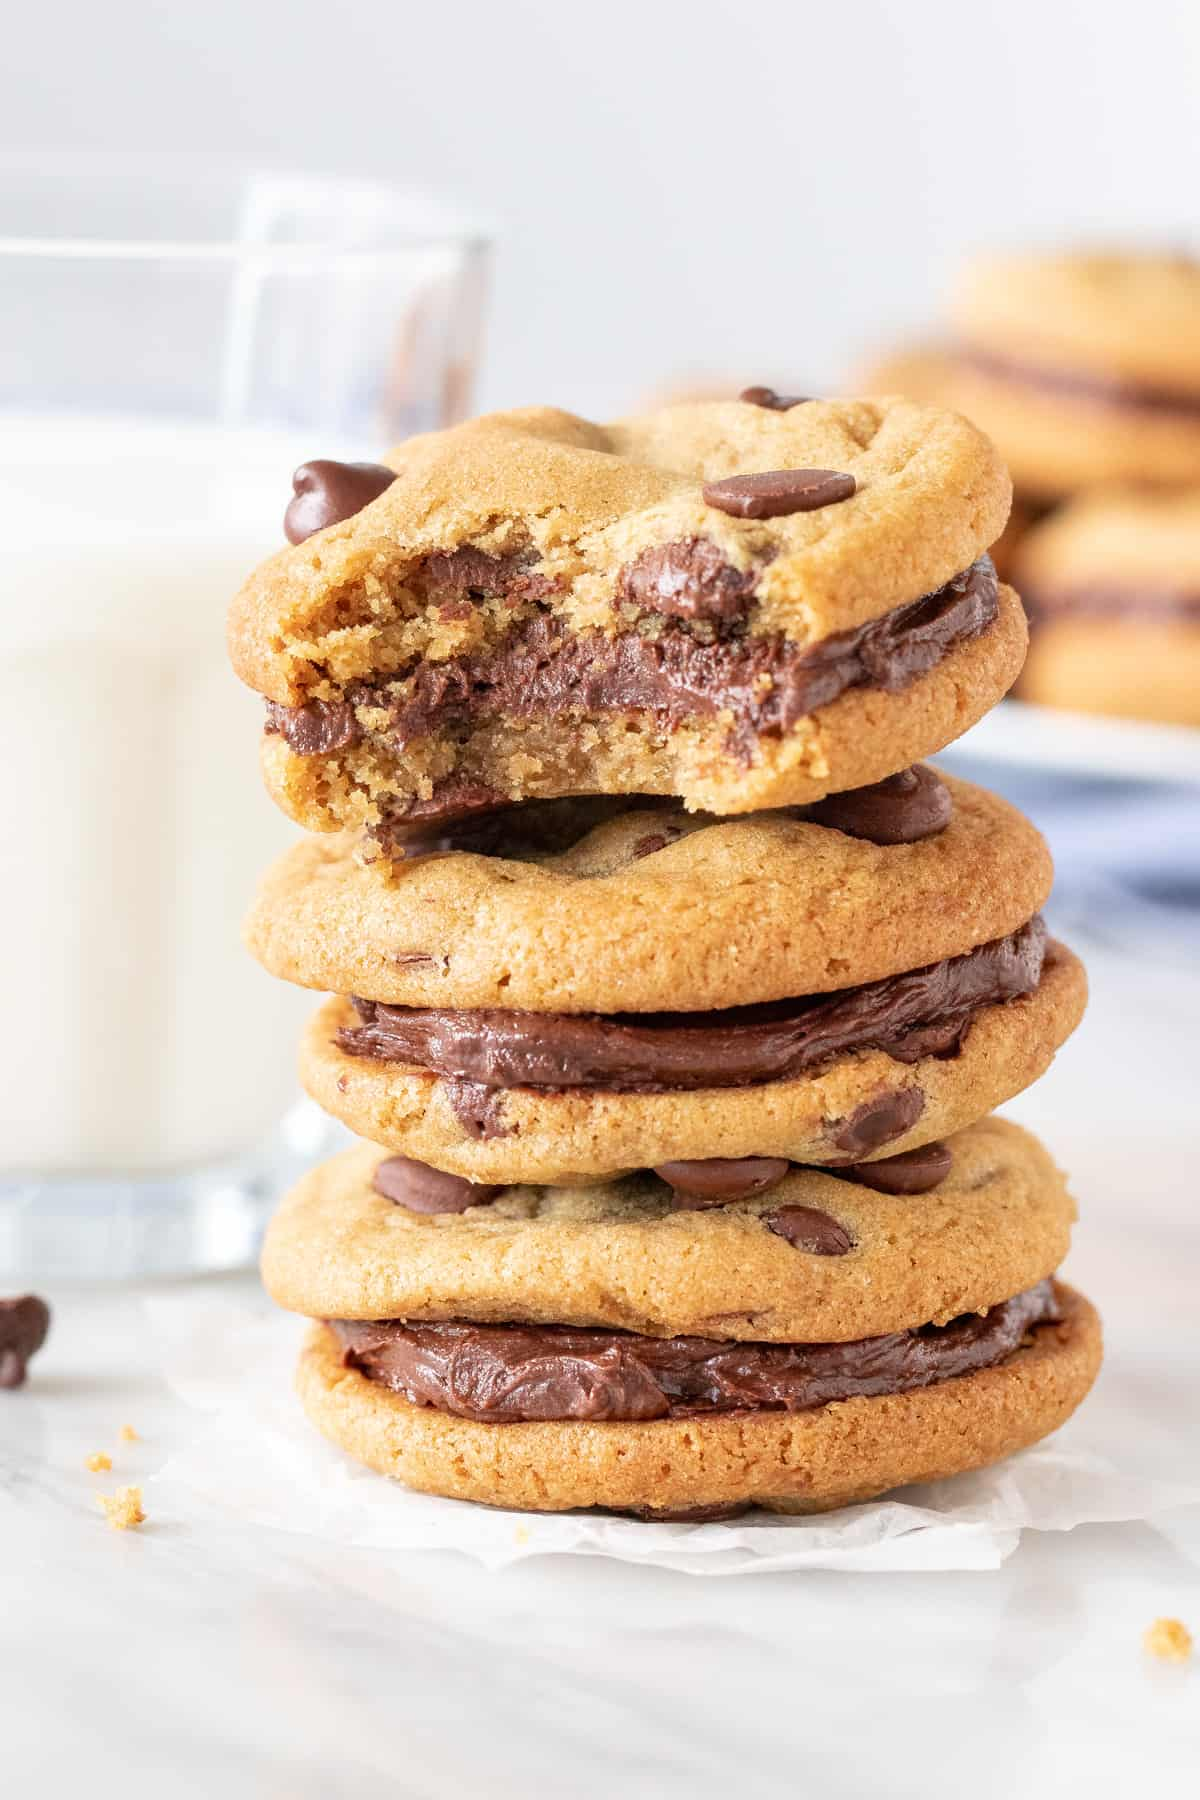 Stack of 3 sandwich cookies with chocolate frosting in the middle.